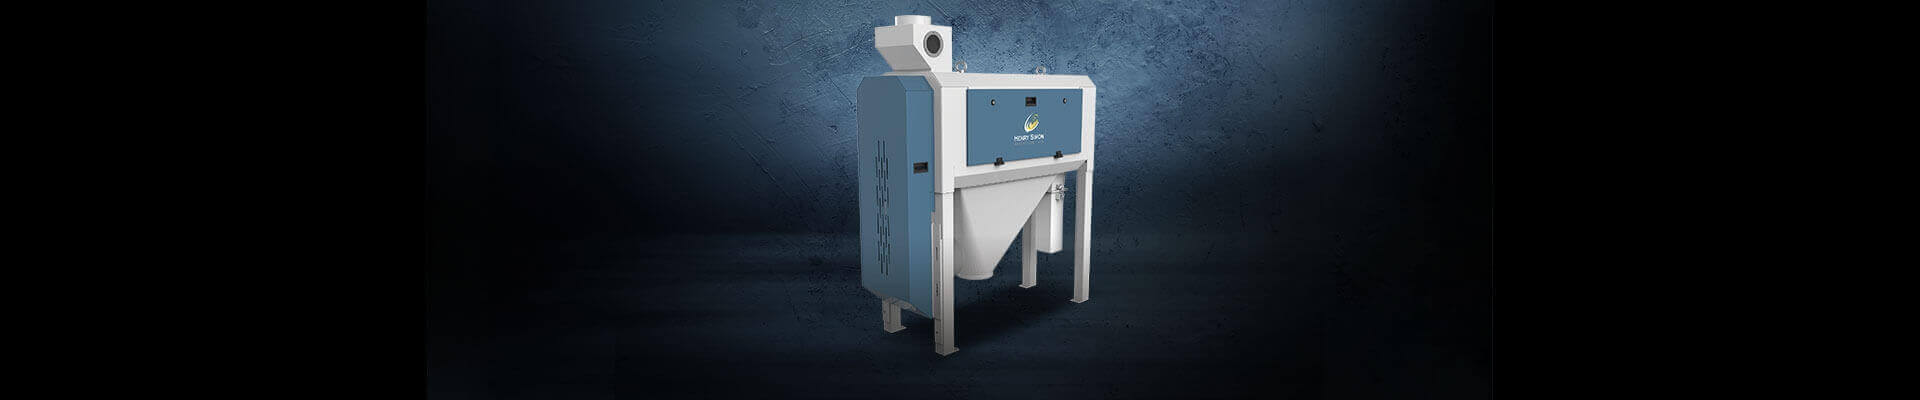 TURBO CONTROL SIFTER